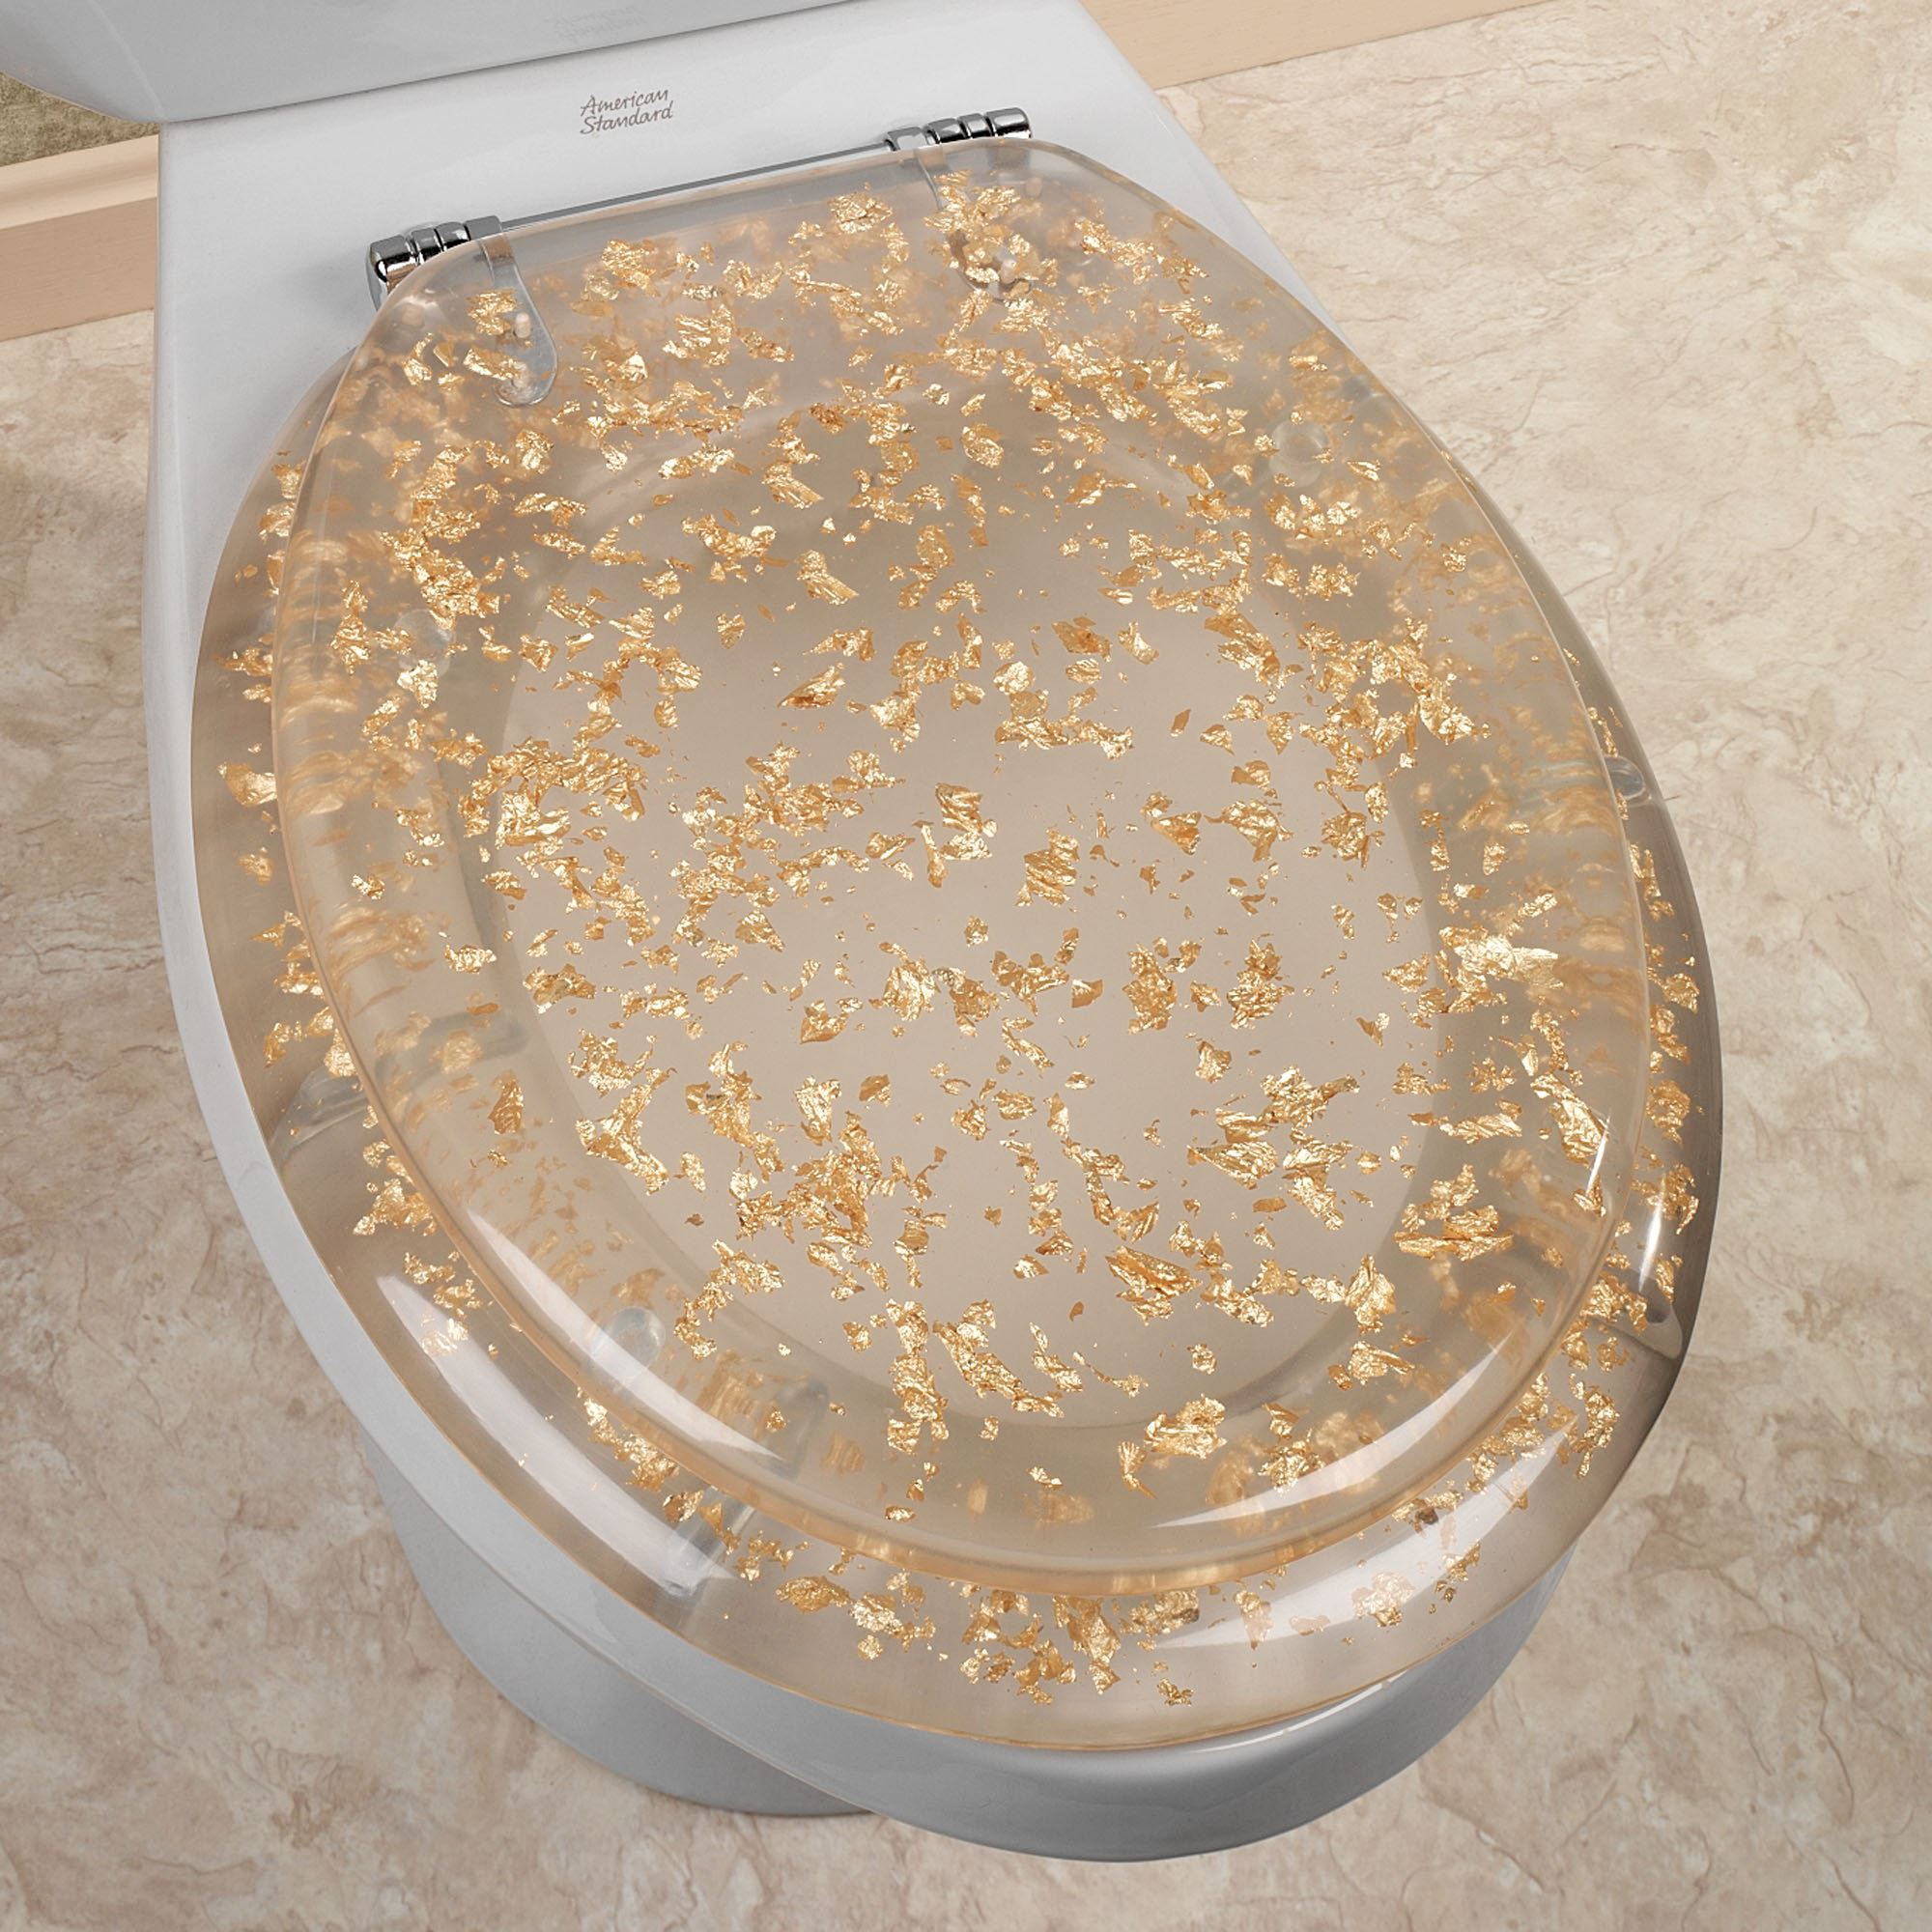 Seashell Home Decor Gold Foil Elongated Toilet Seat